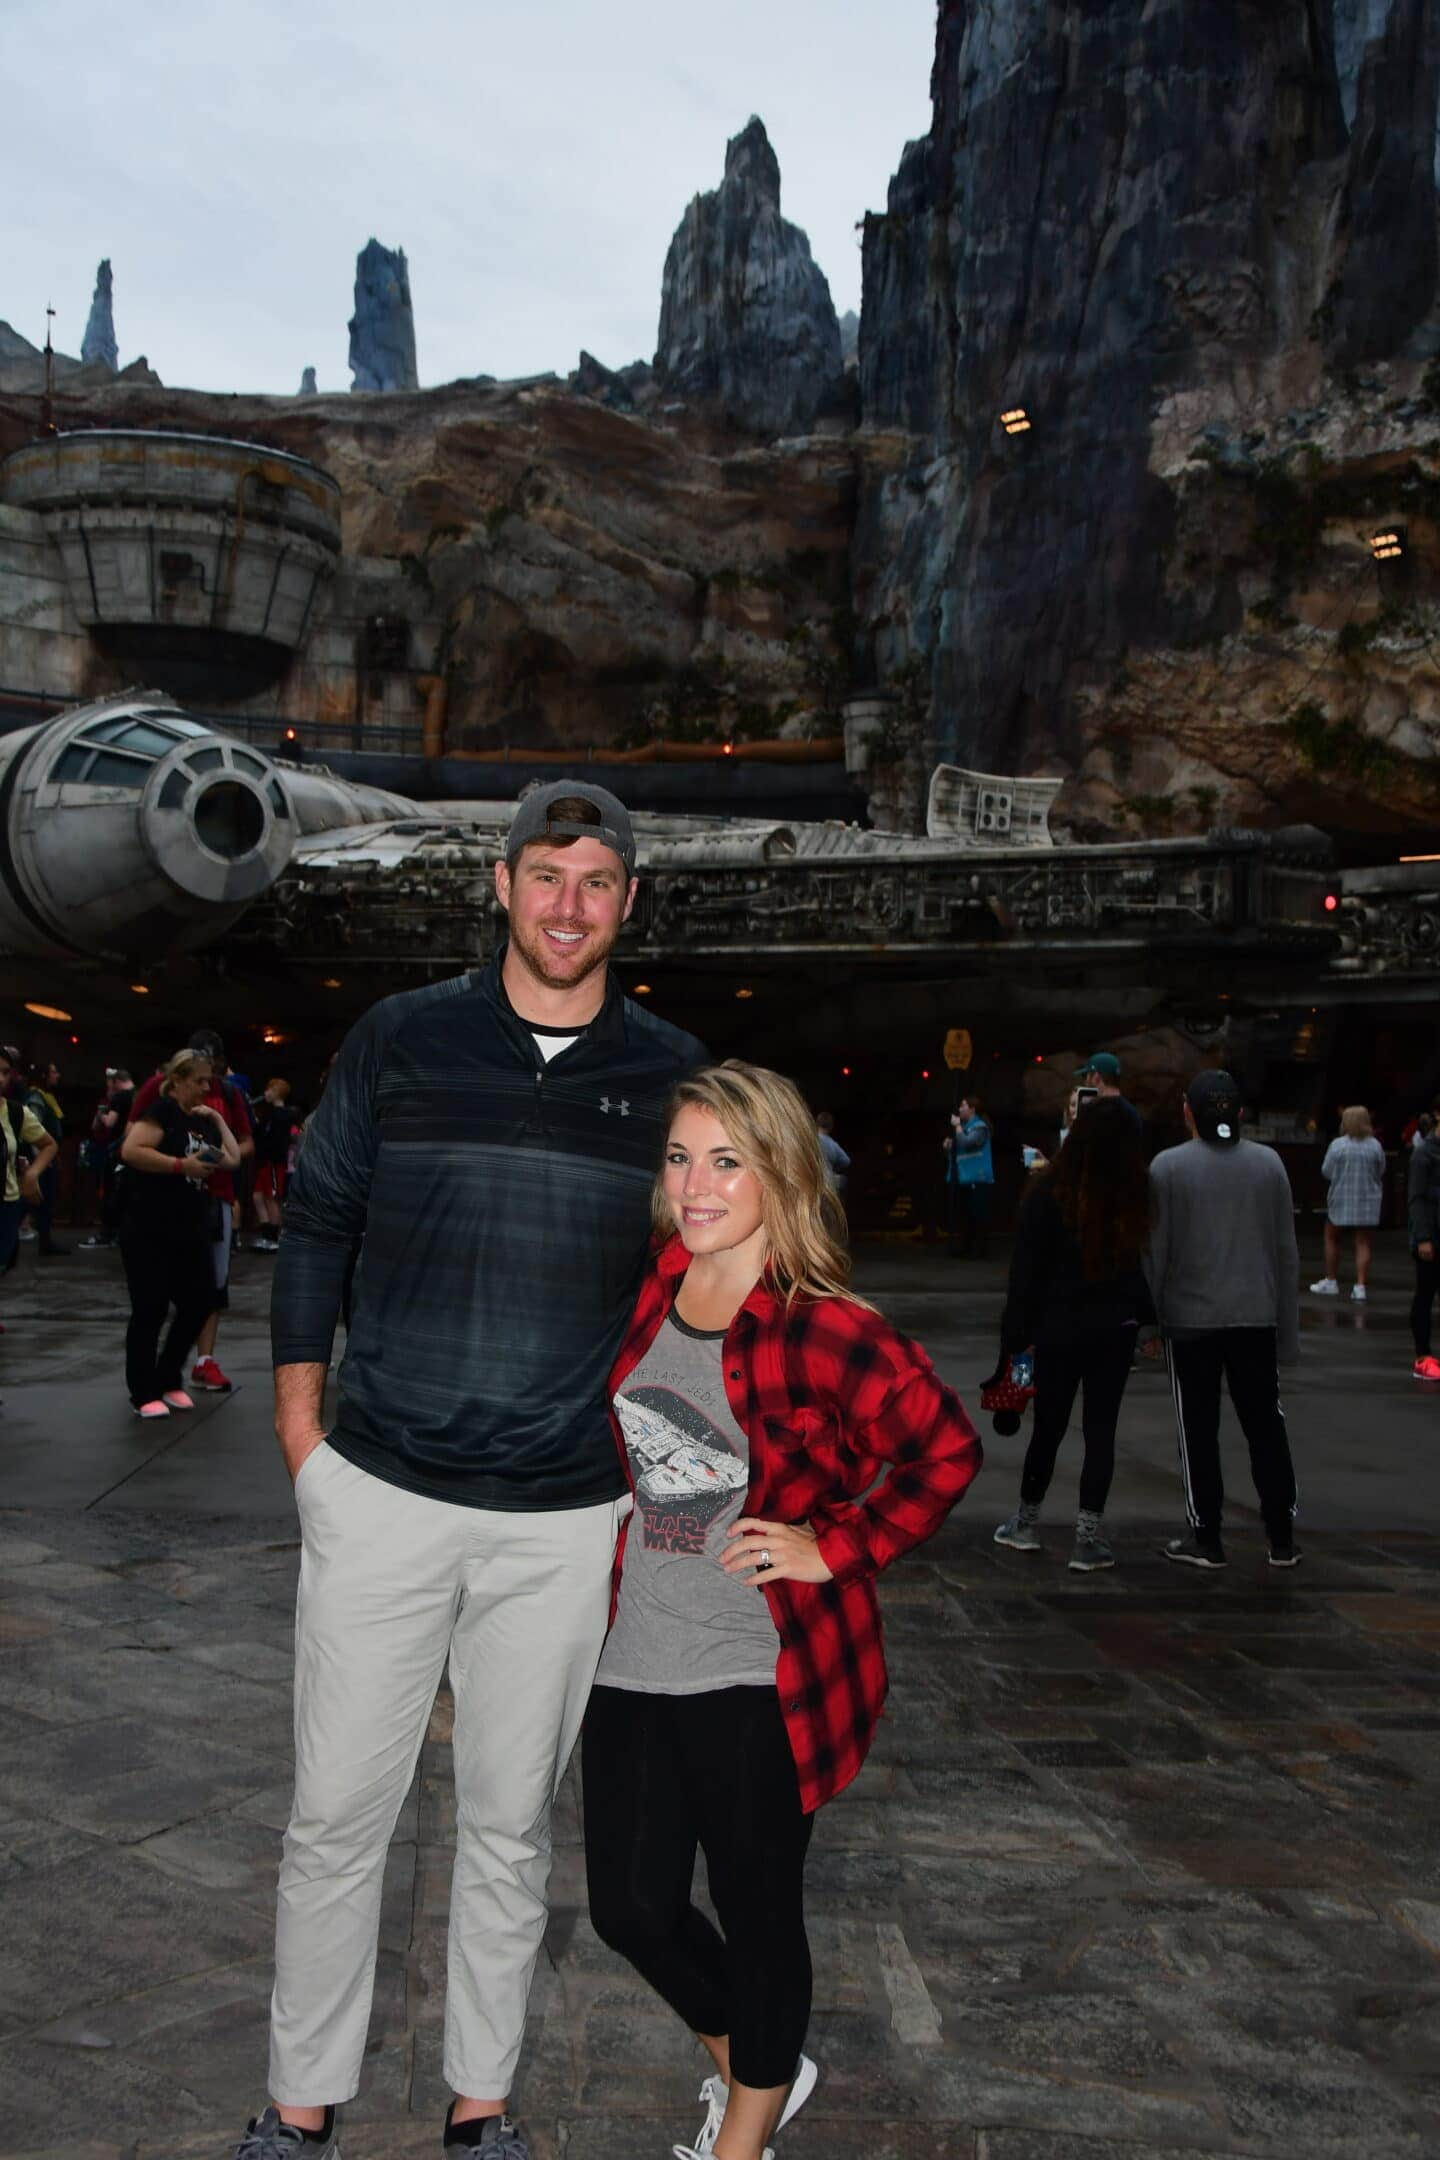 Zach and Emily Christmas Disney Getaway 2019